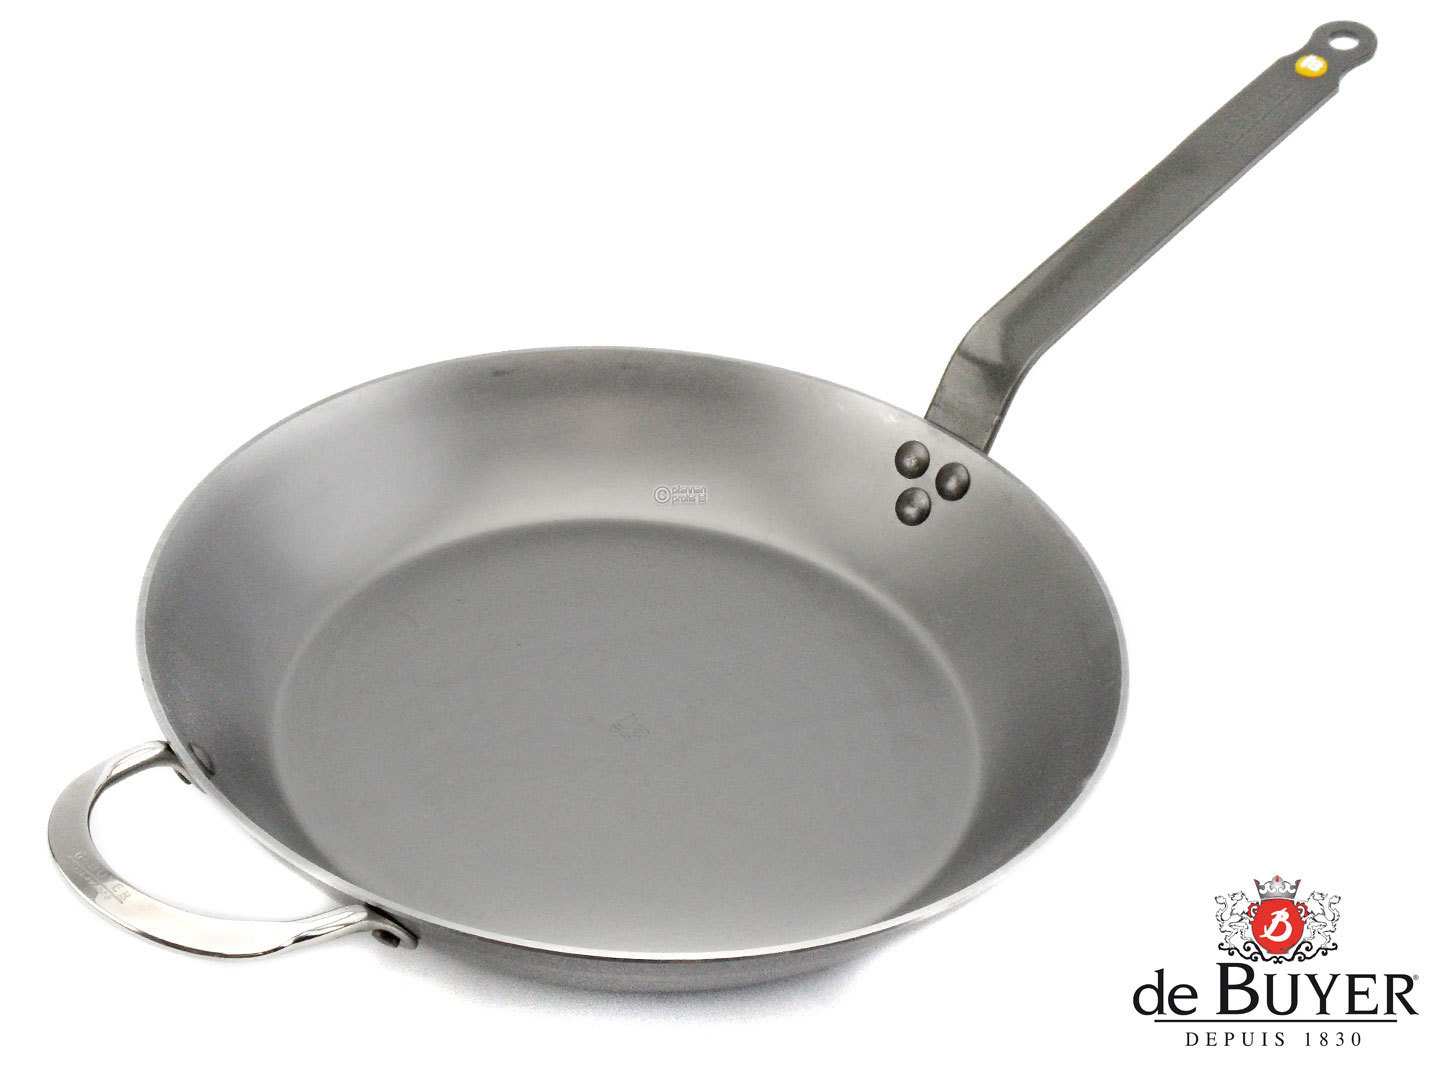 DE BUYER Eisenpfanne MINERAL B ELEMENT 32 cm Bratpfanne